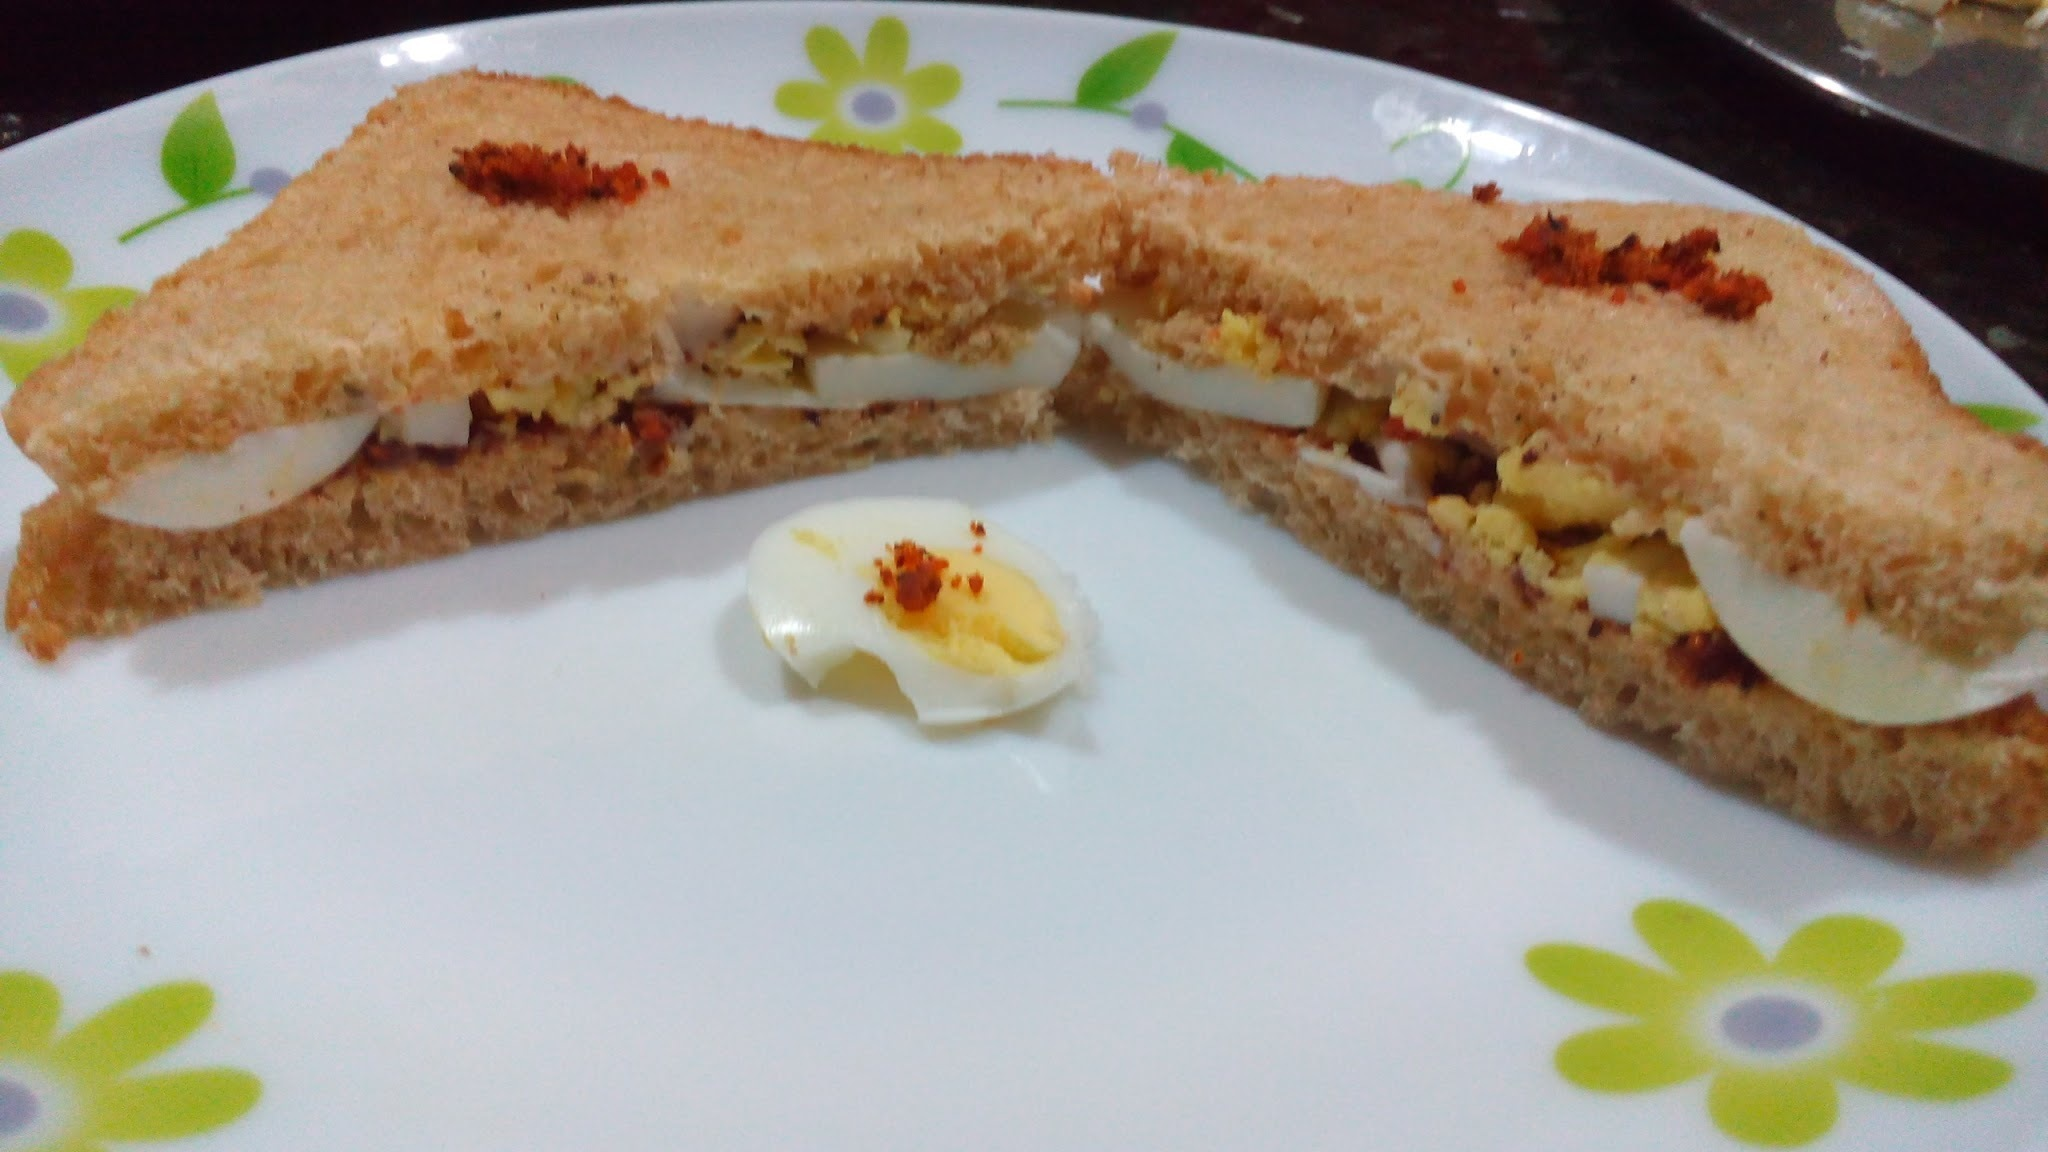 Egg Mayo Garlic Sandwich